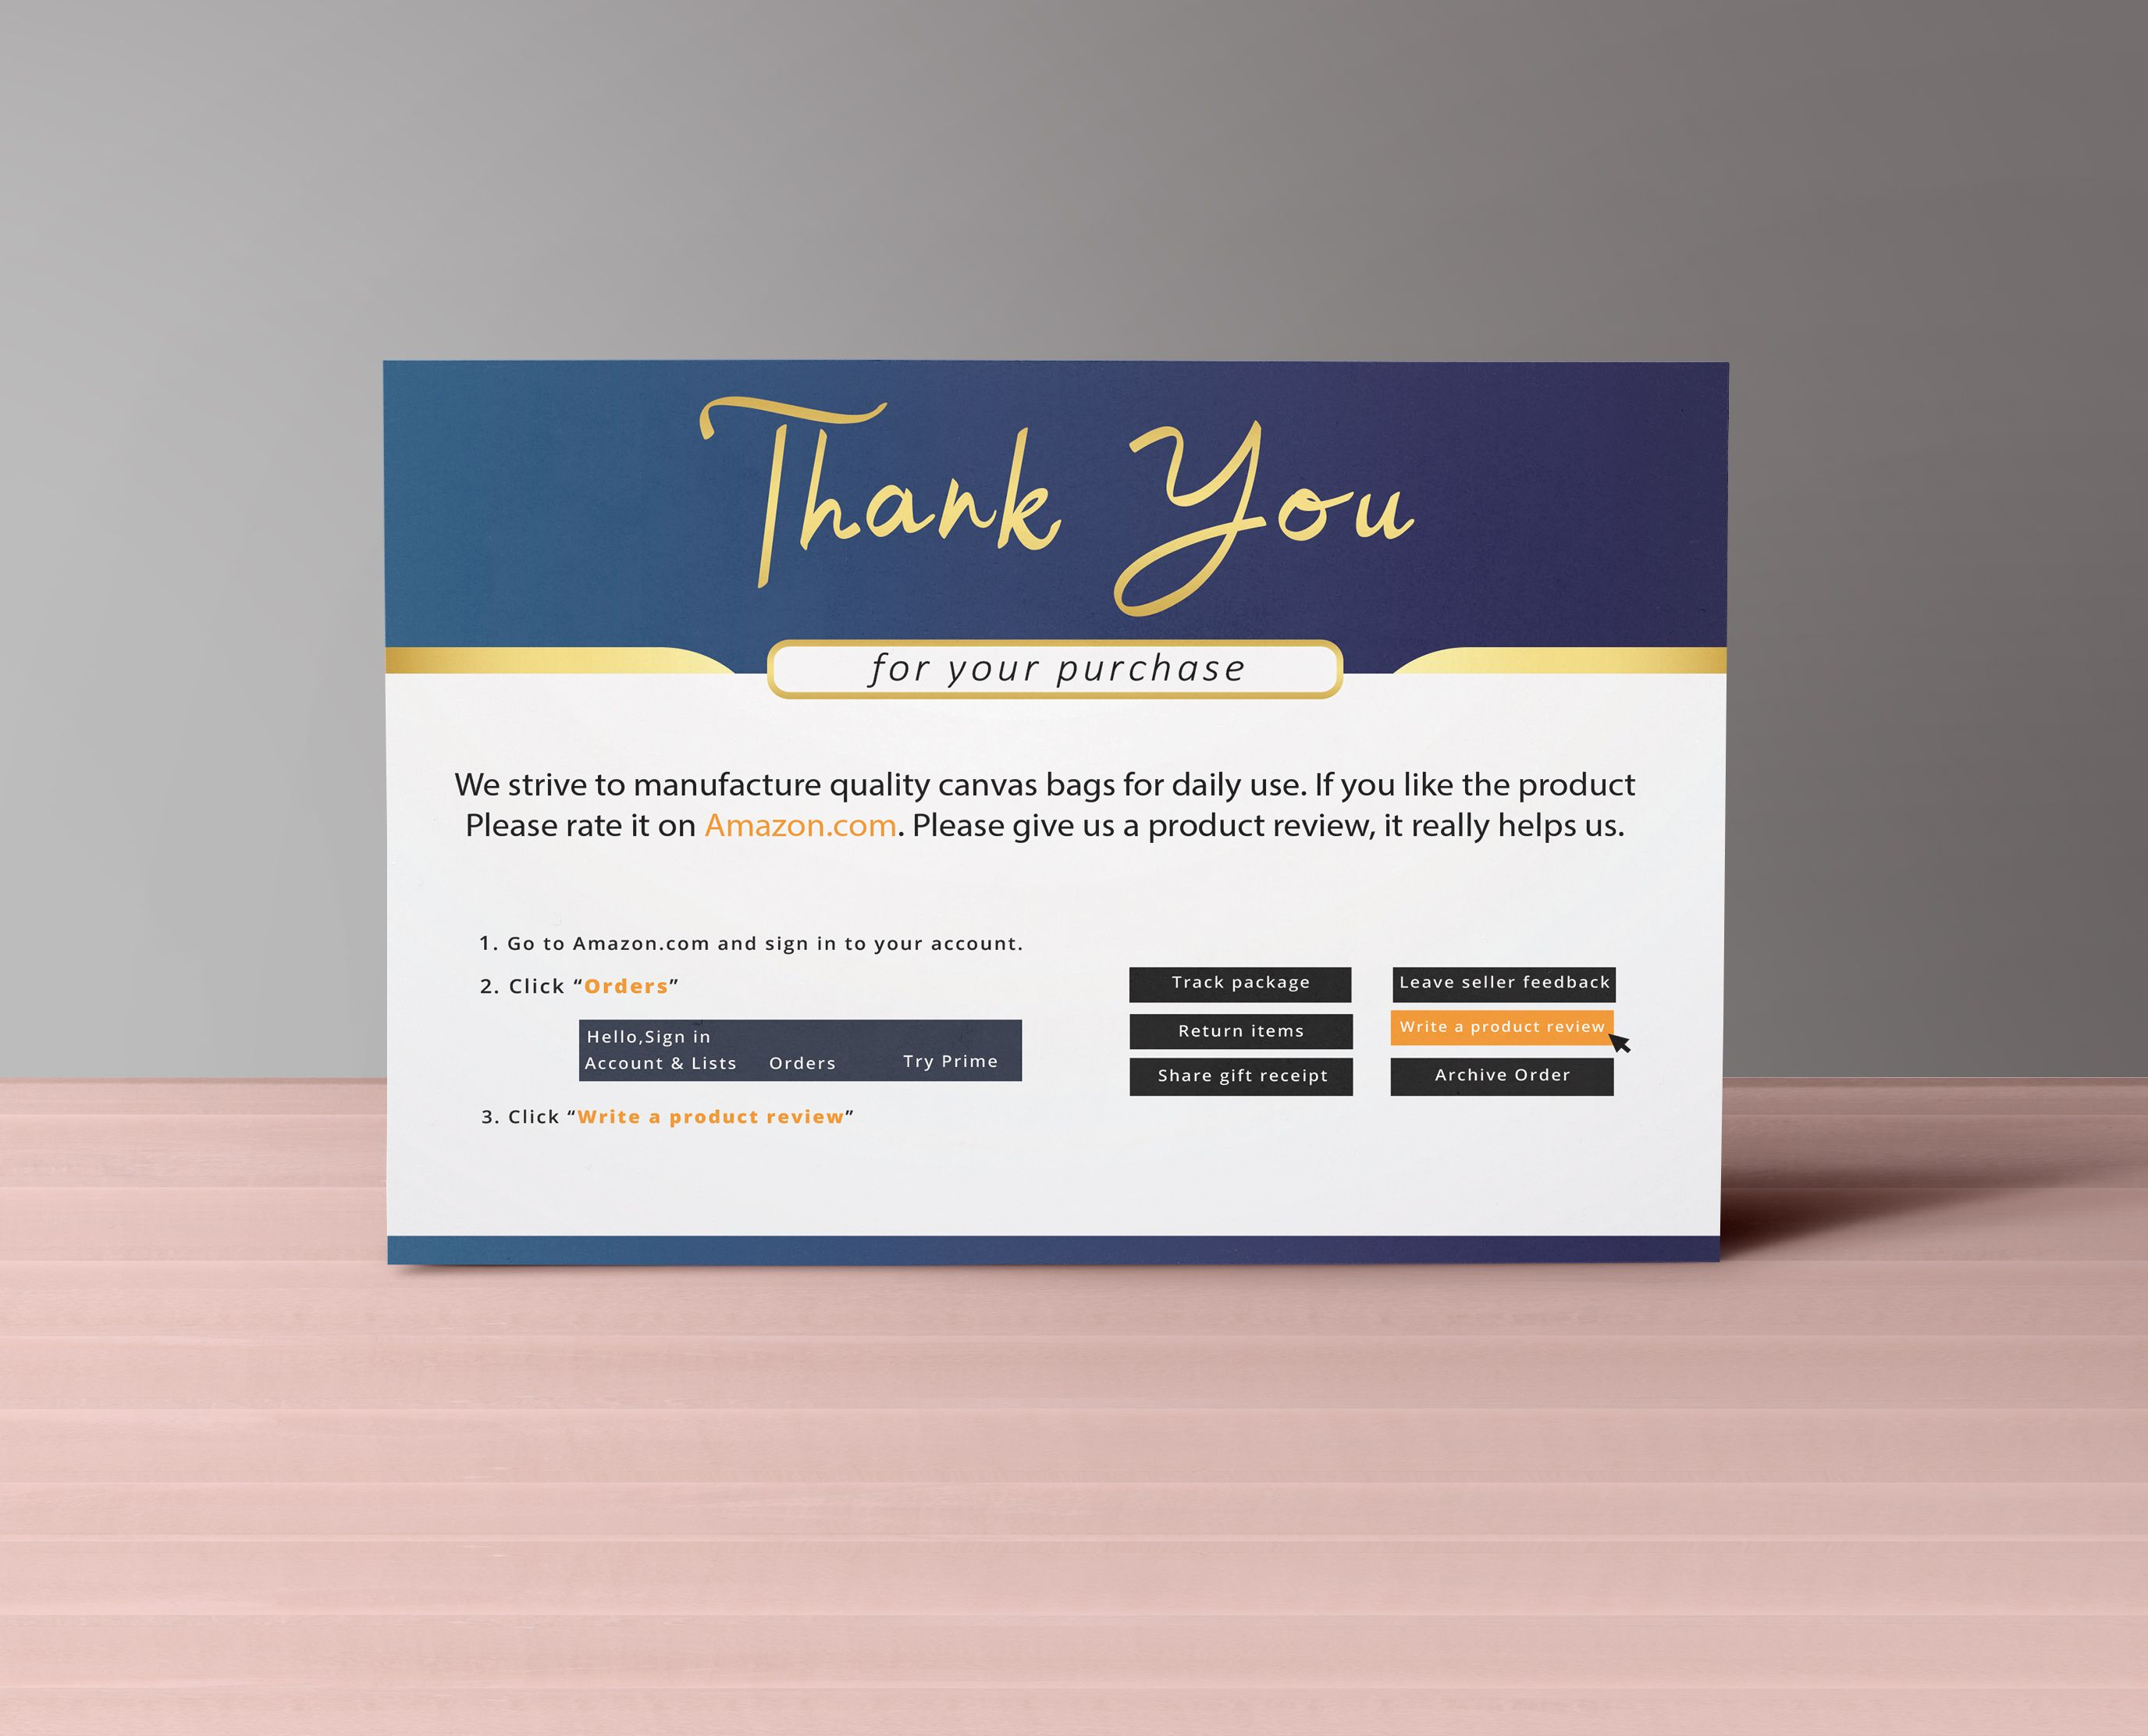 Sadiasultanasa2 I Will Design Amazon Thank You Card Product Insert Package Insert Postcards For 5 On Fiverr Com Thank You Cards Thank You Card Design Thank You Card Template